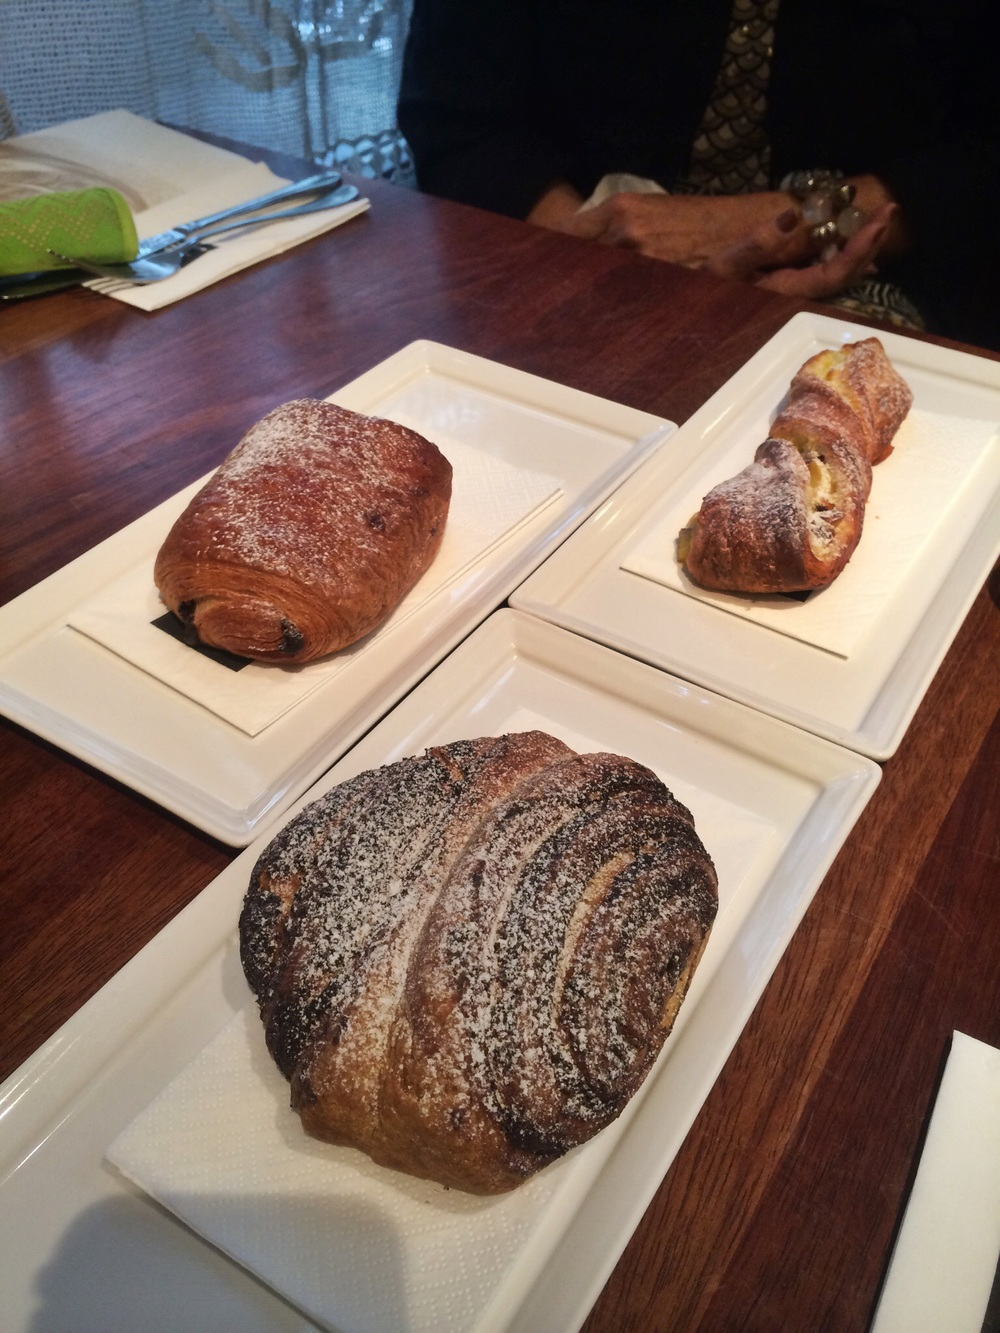 Wonderful warm-from-the-oven breads